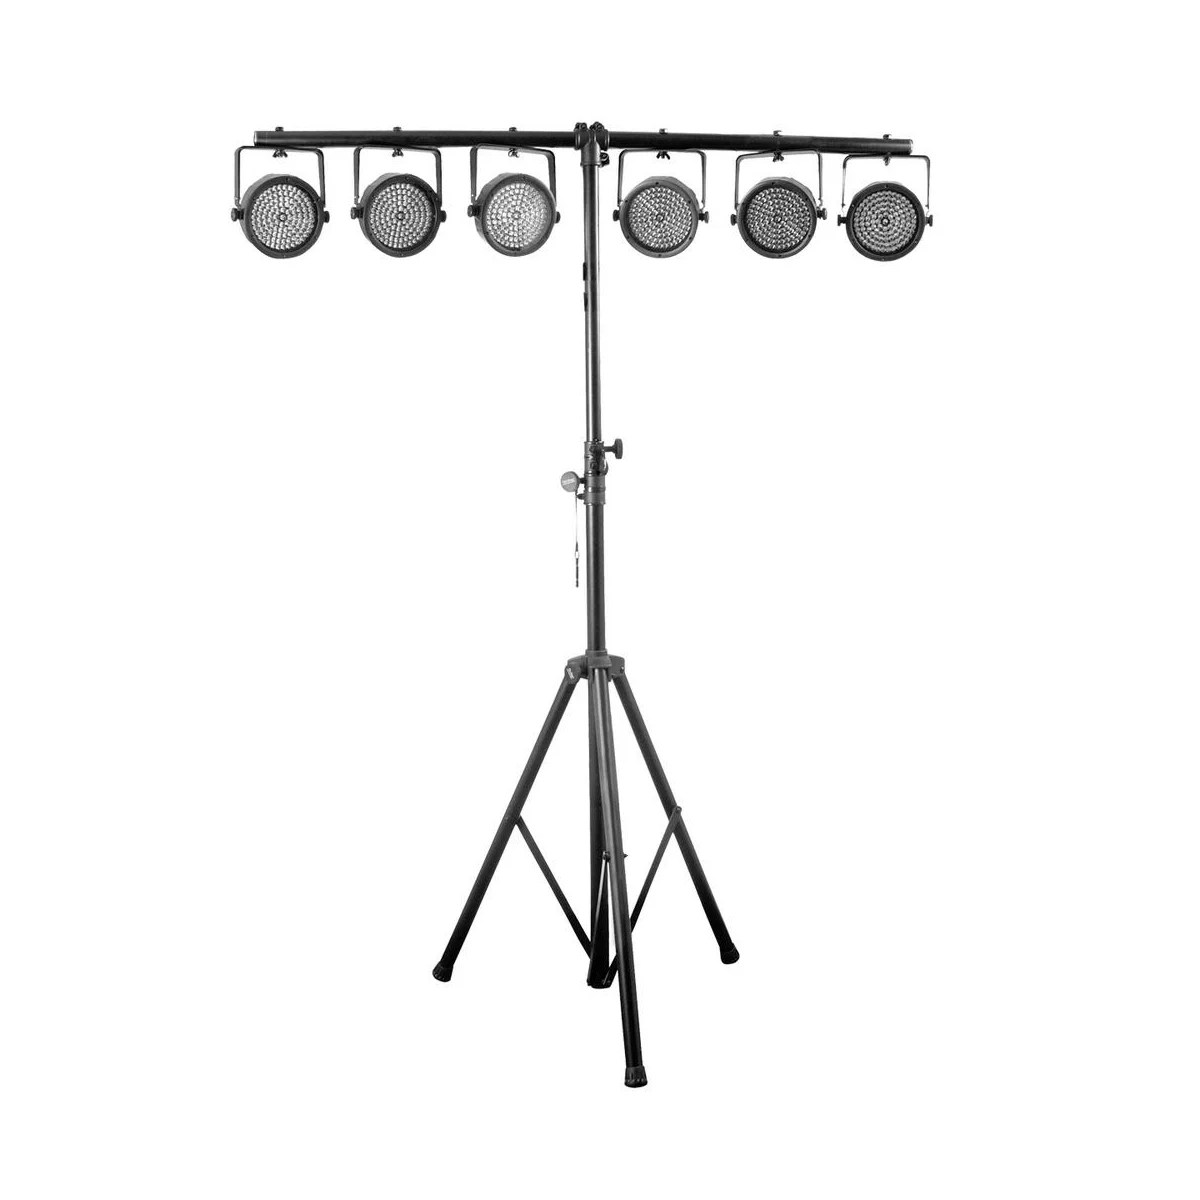 On Stage Stands Ls Qik Quick Connect U Mount Lighting